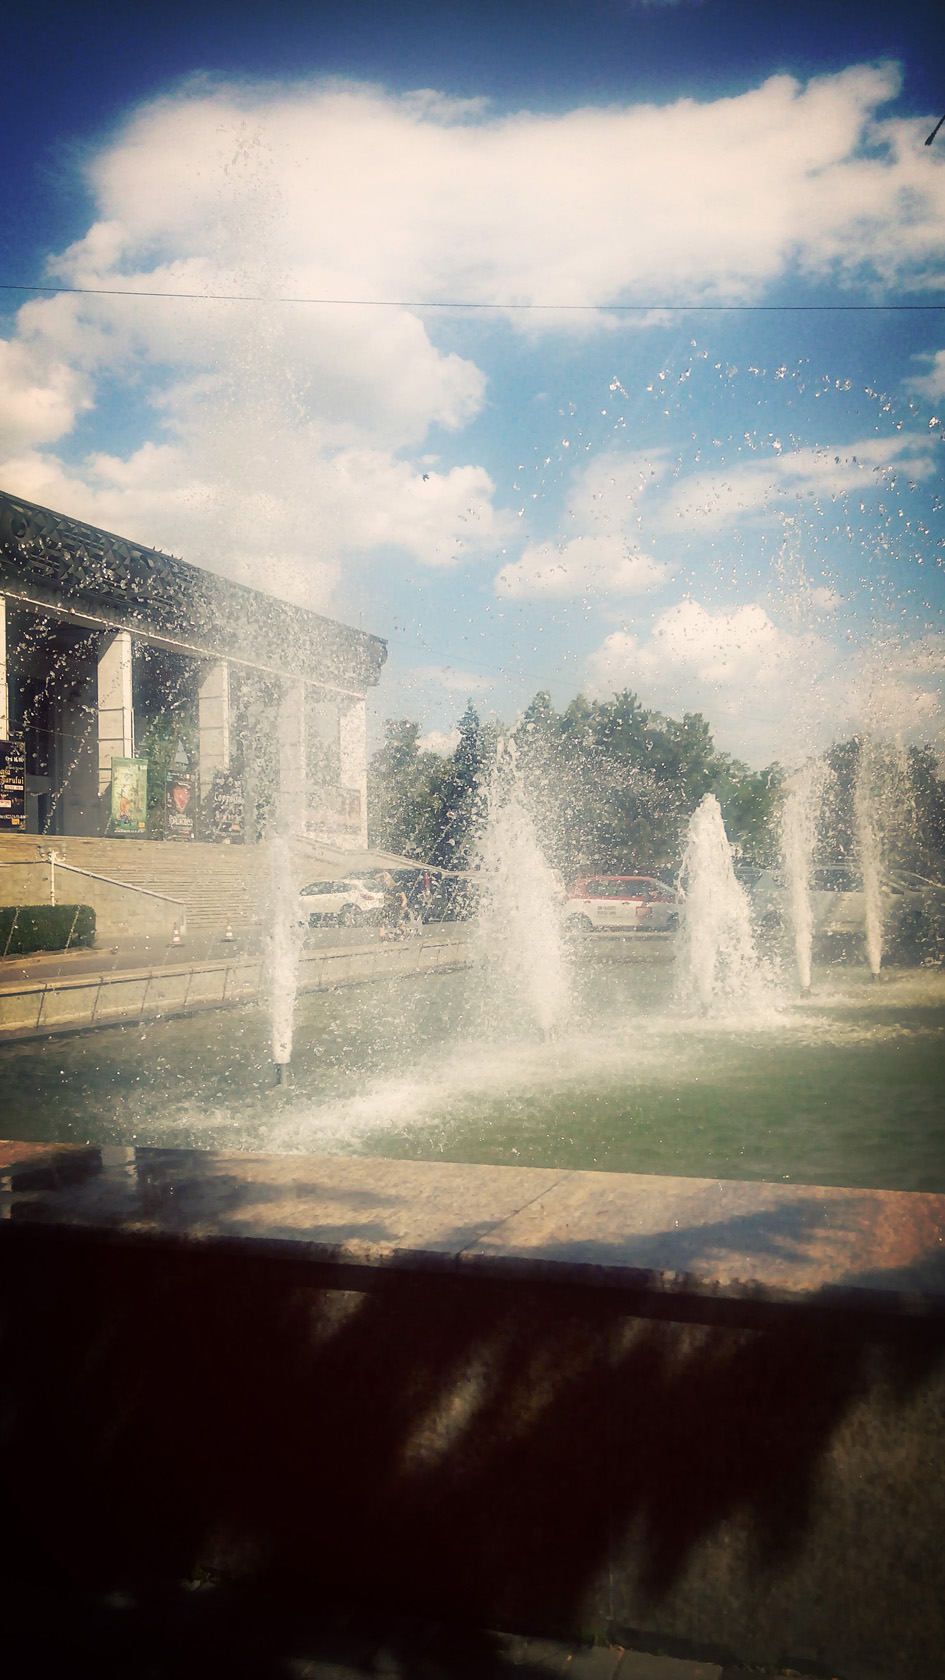 05-fountains in chisinau vintage filter